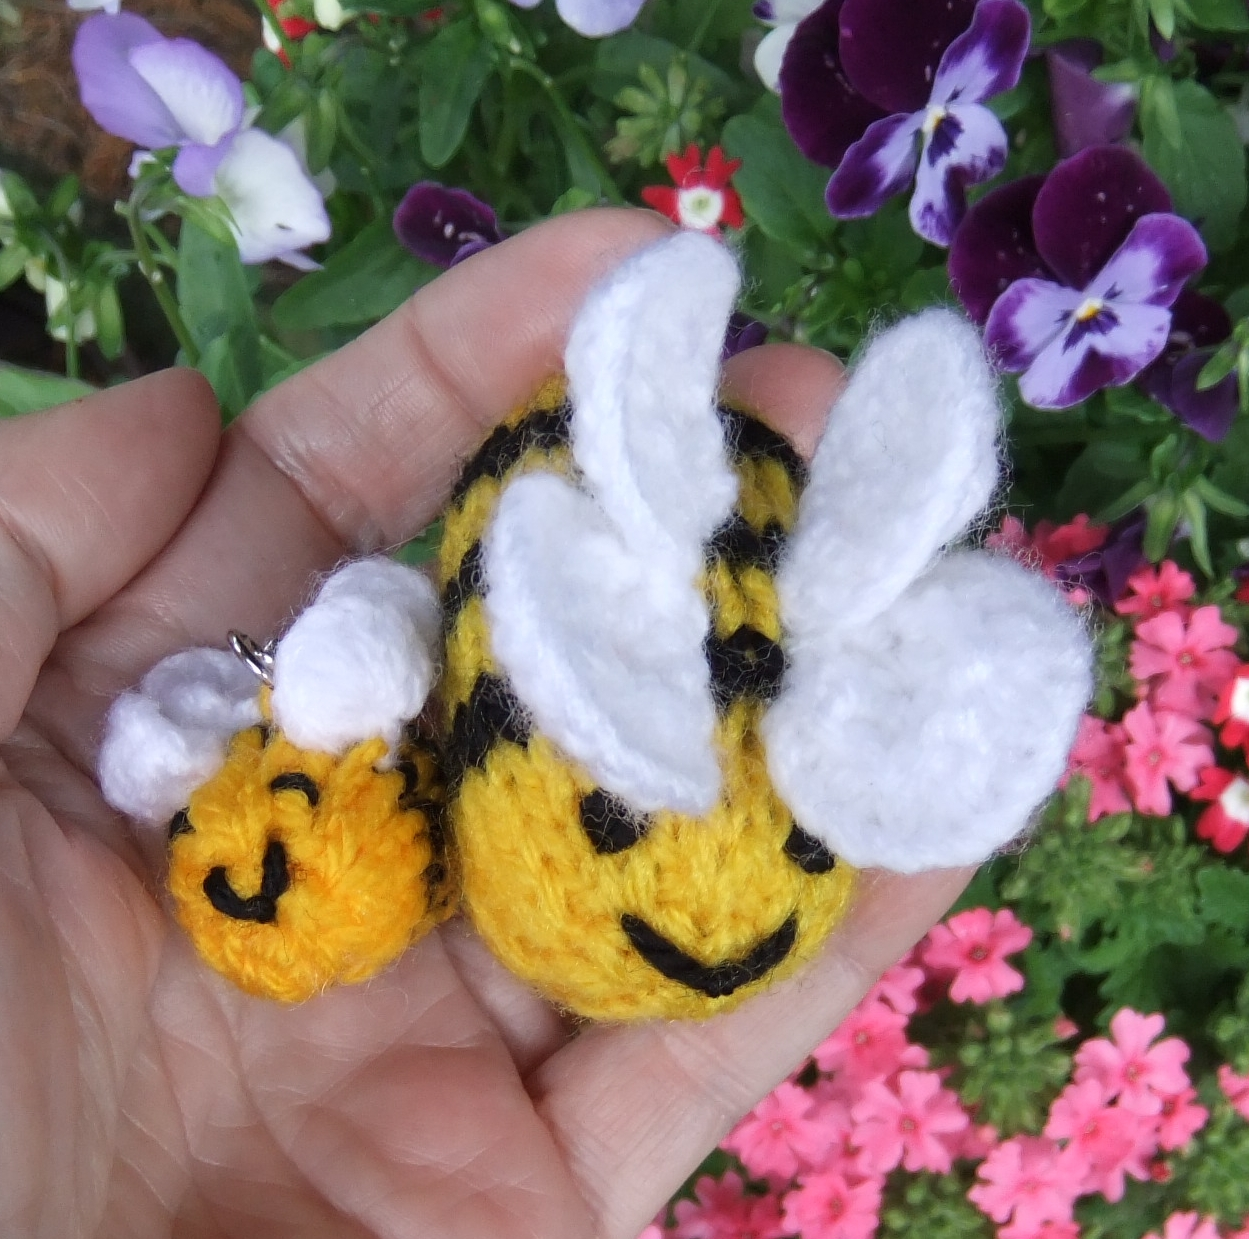 Yarn Bee Knitting Patterns : So much yarn, so little time.: Buzz, buzz, buzz: knitting pattern for buzzy b...